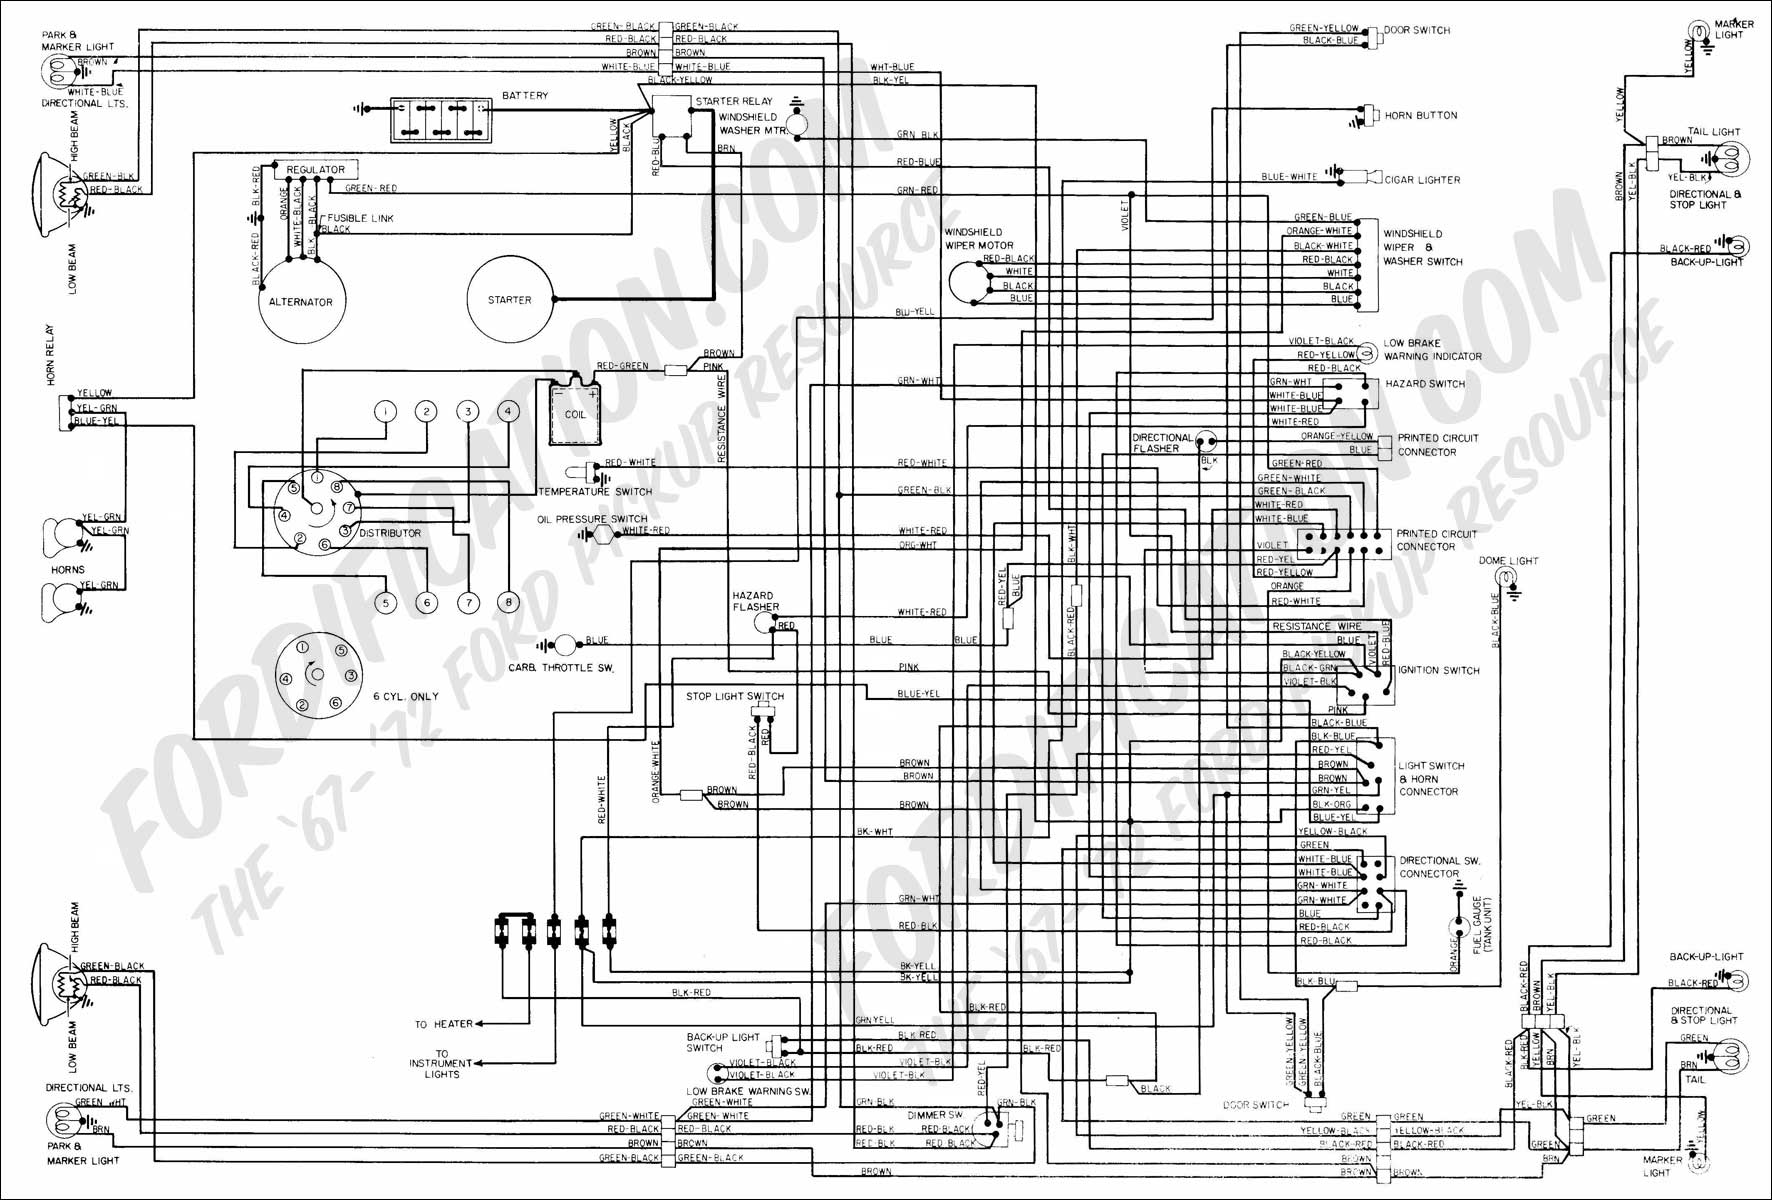 wiring diagram 72_quick ford focus 2008 wiring diagram pdf efcaviation com 2007 f250 wiring diagram at pacquiaovsvargaslive.co